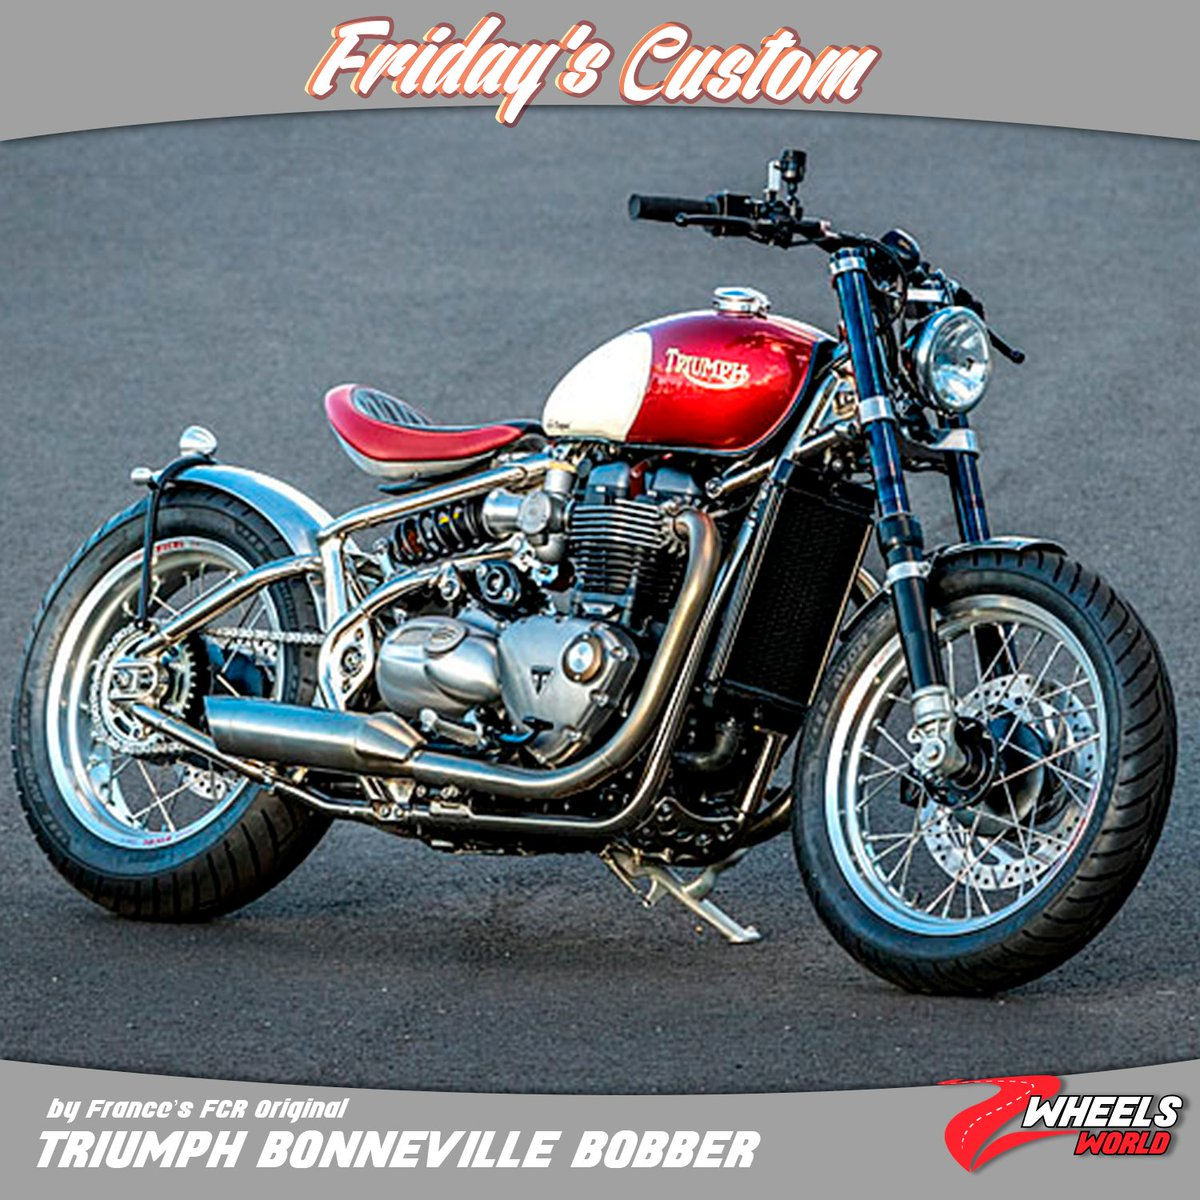 Pure Triumph On Twitter Friday Custom Introducing An Authentic